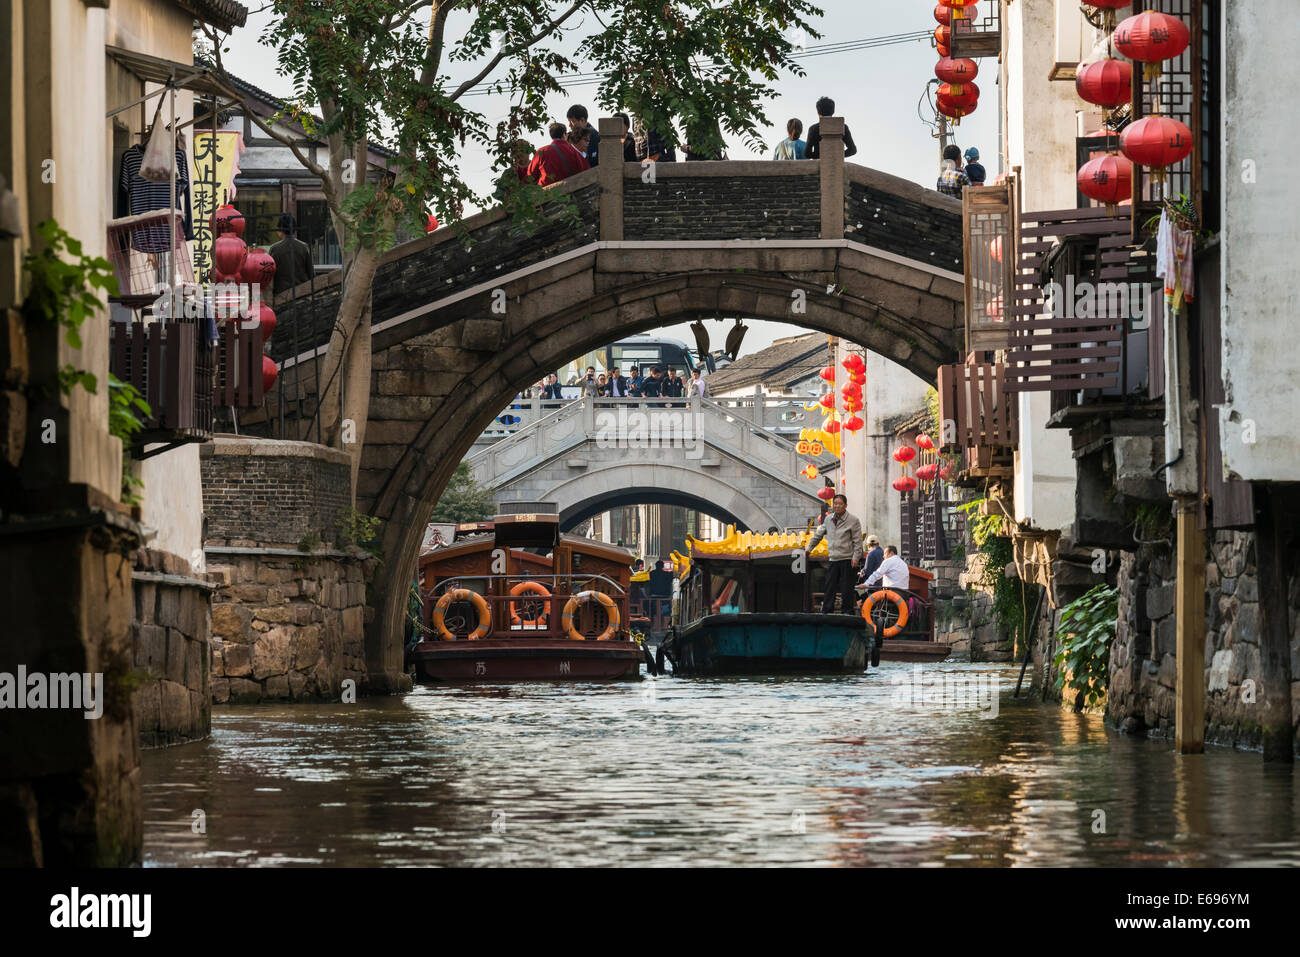 Bridge over a waterway with boats, Suzhou, China - Stock Image